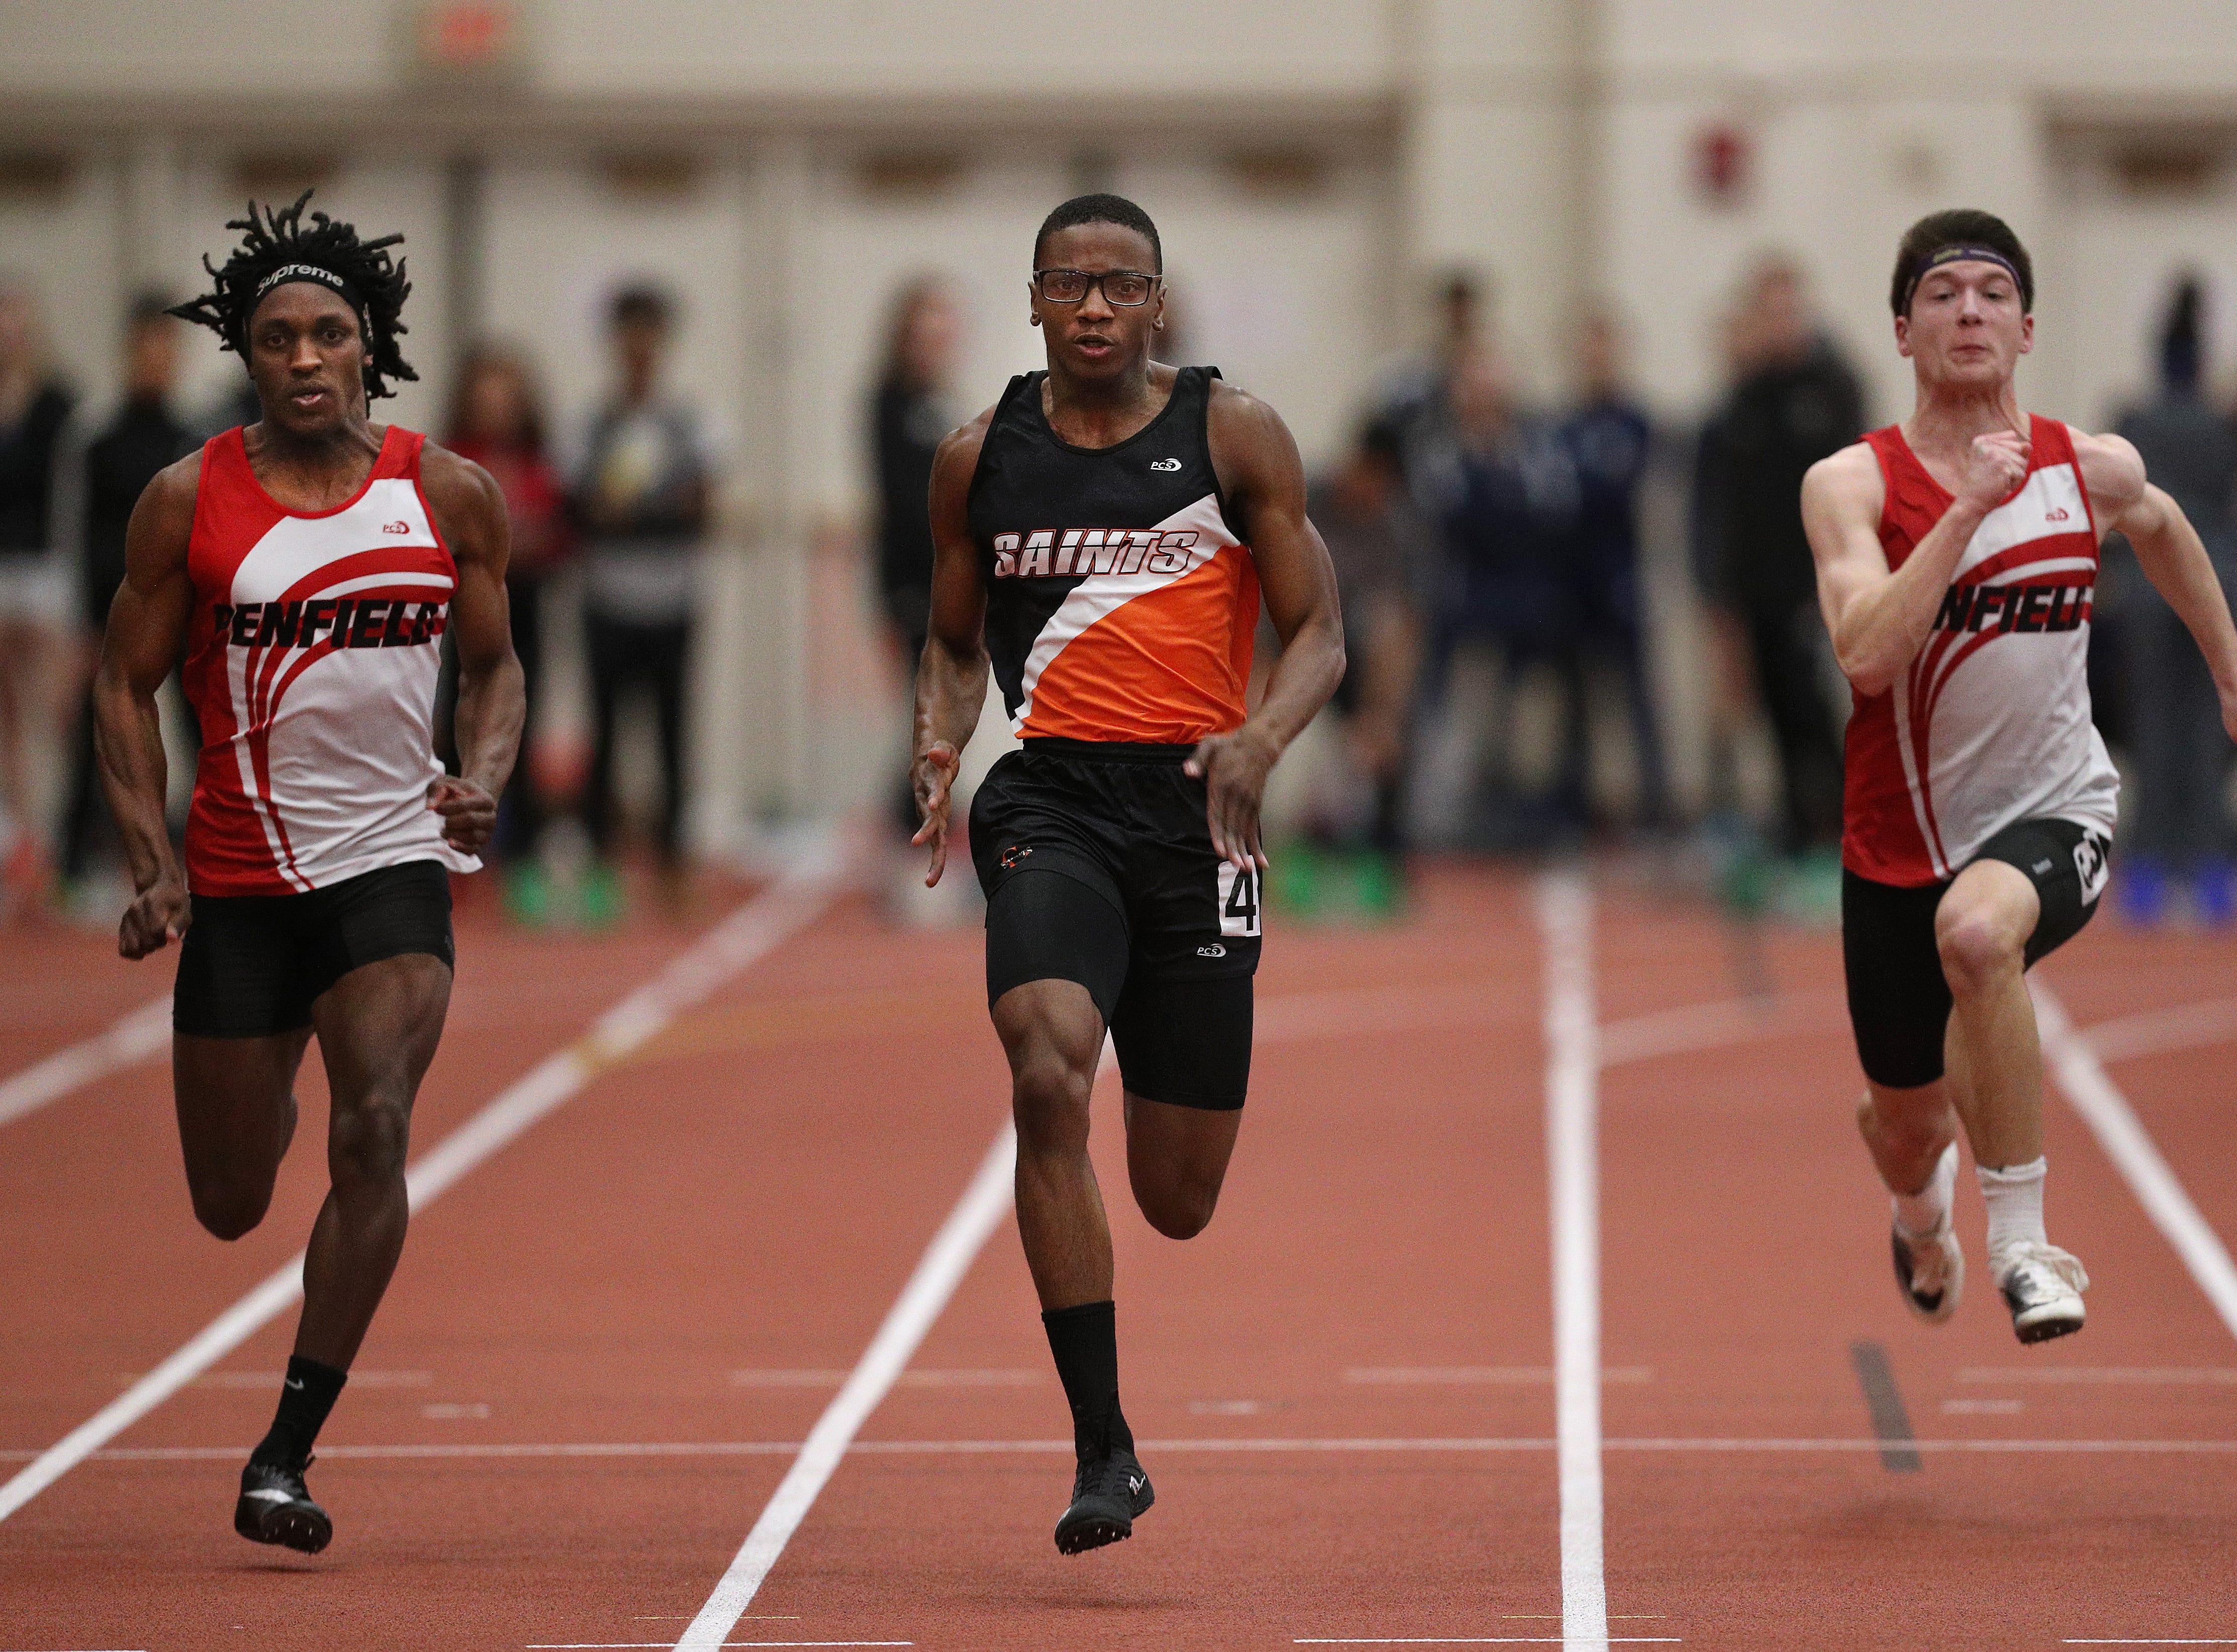 Churchville-Chili's Jaron Nesmith (center) wins the Class A 55 meter dash against Penfield's Chris Allen (L) and Joe Pizzi.